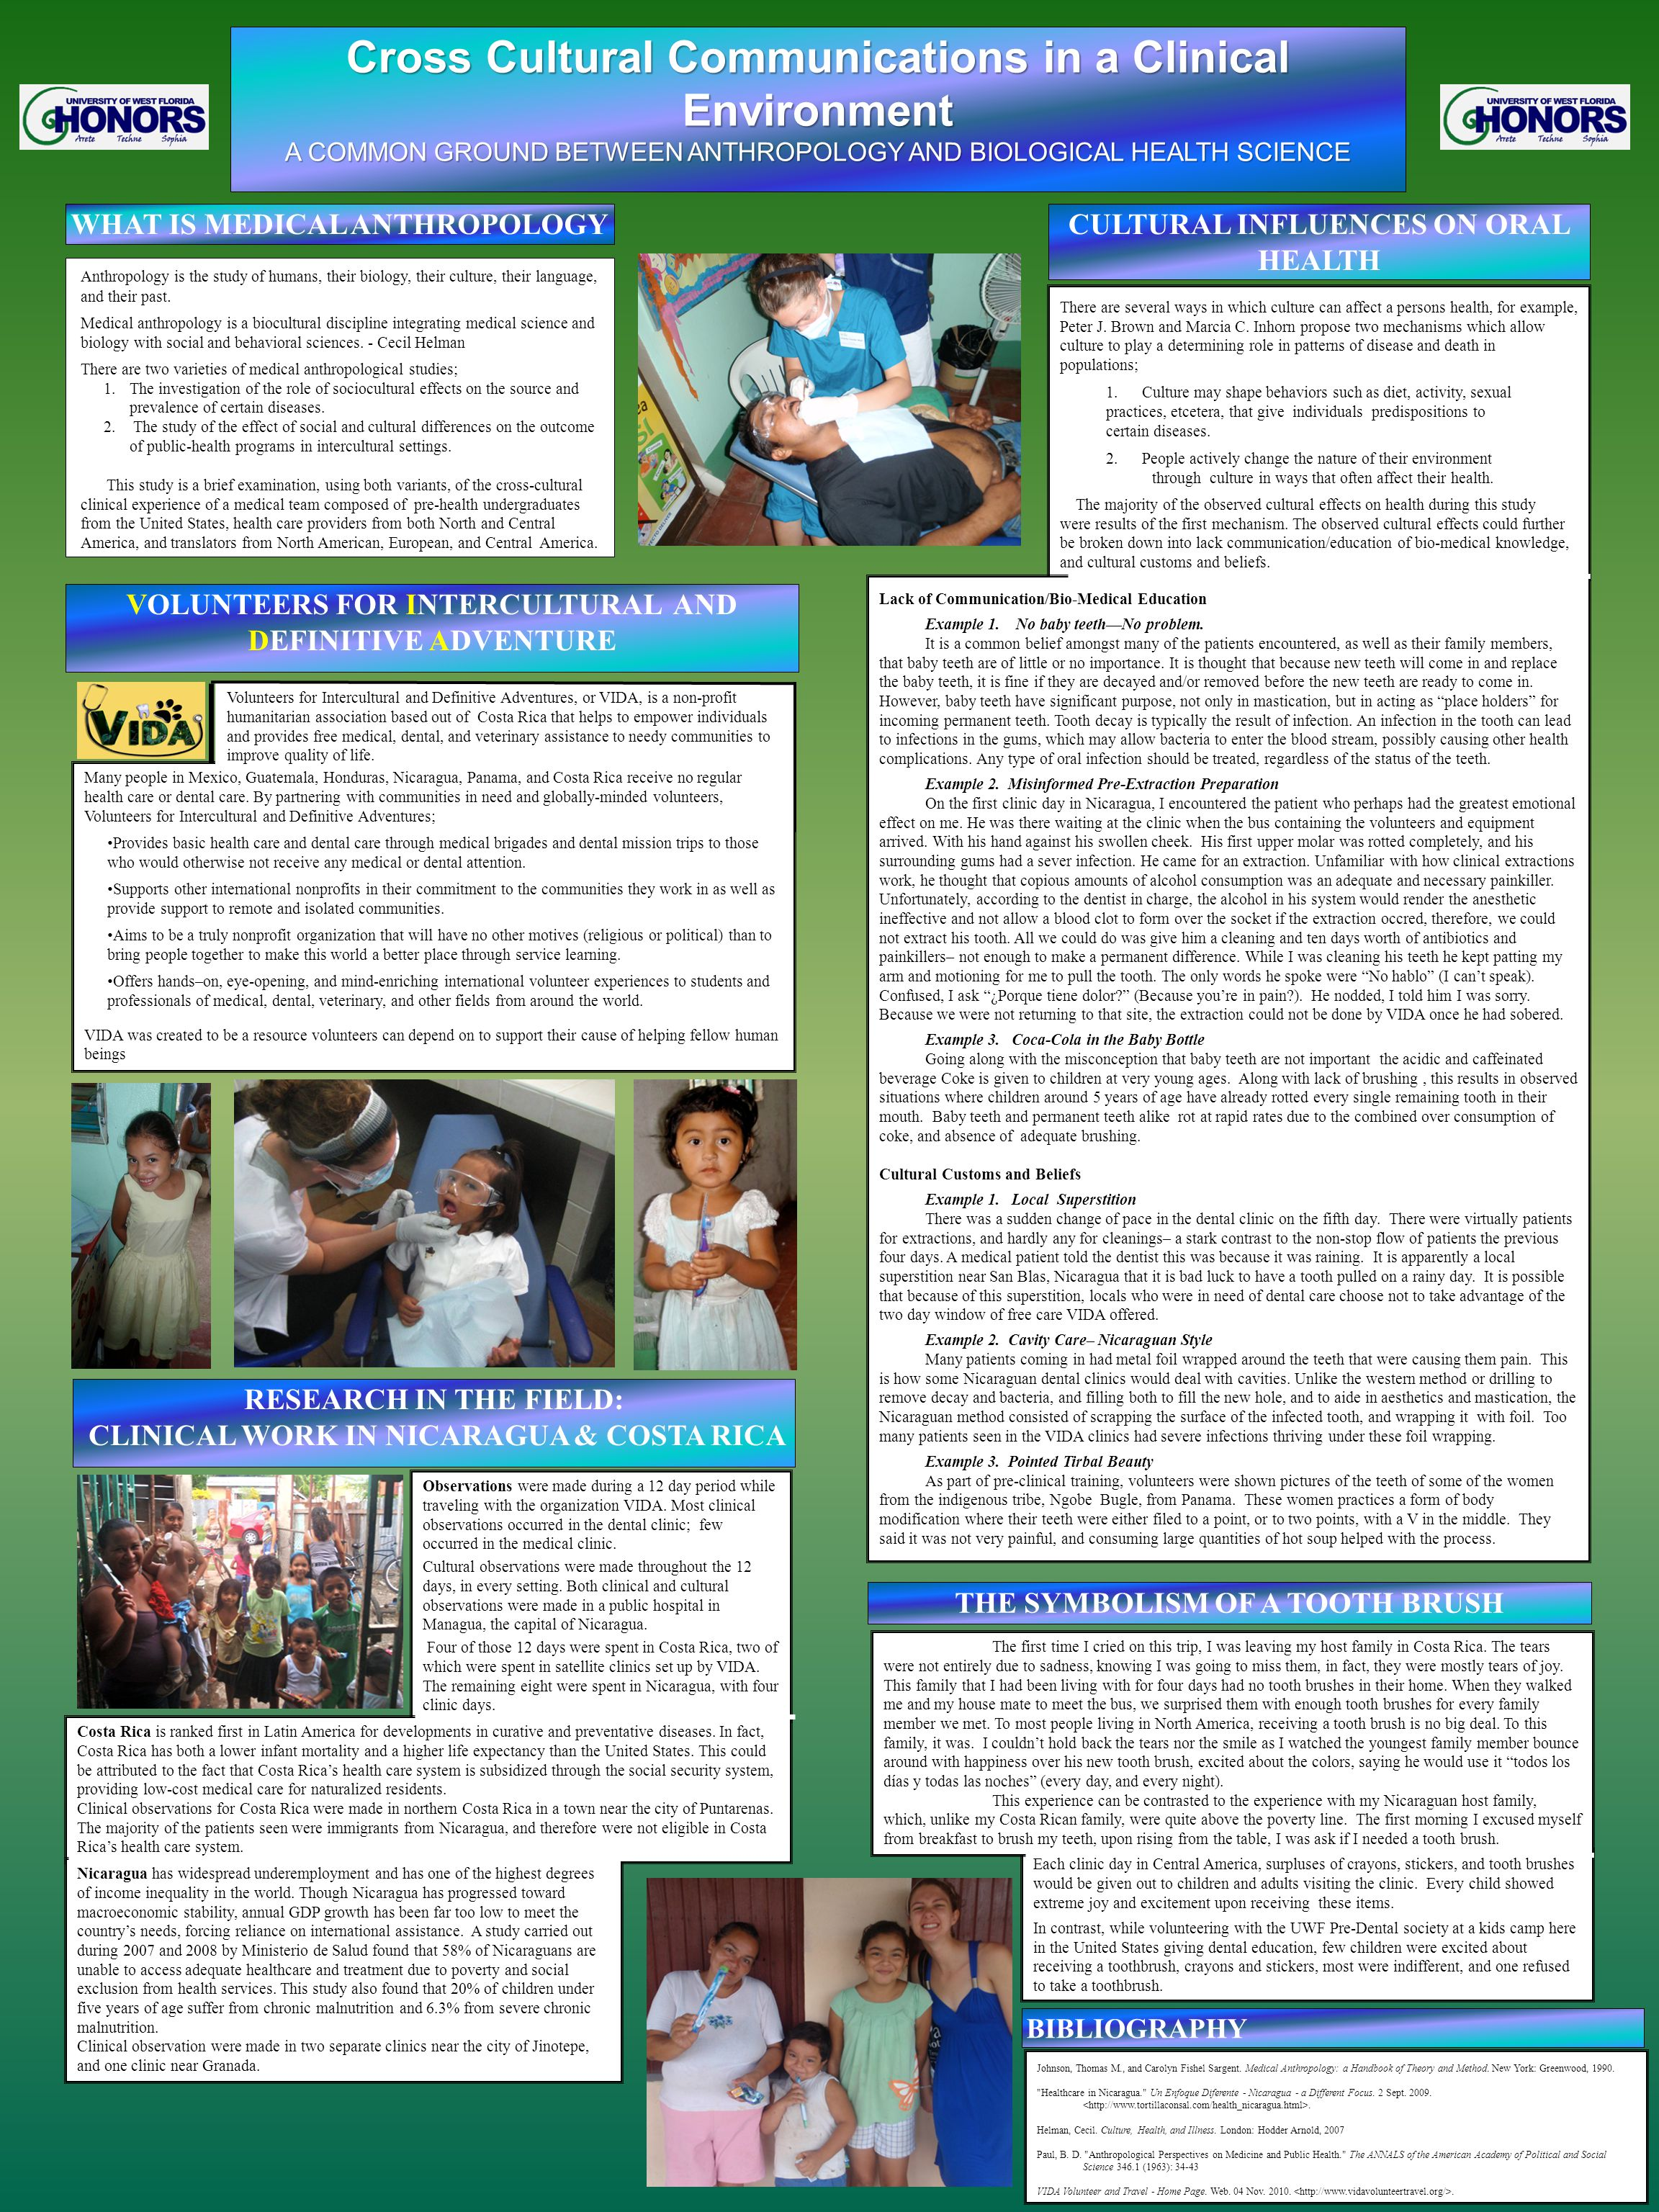 printed by www.postersession.com Many people in Mexico, Guatemala, Honduras, Nicaragua, Panama, and Costa Rica receive no regular health care or dental care.